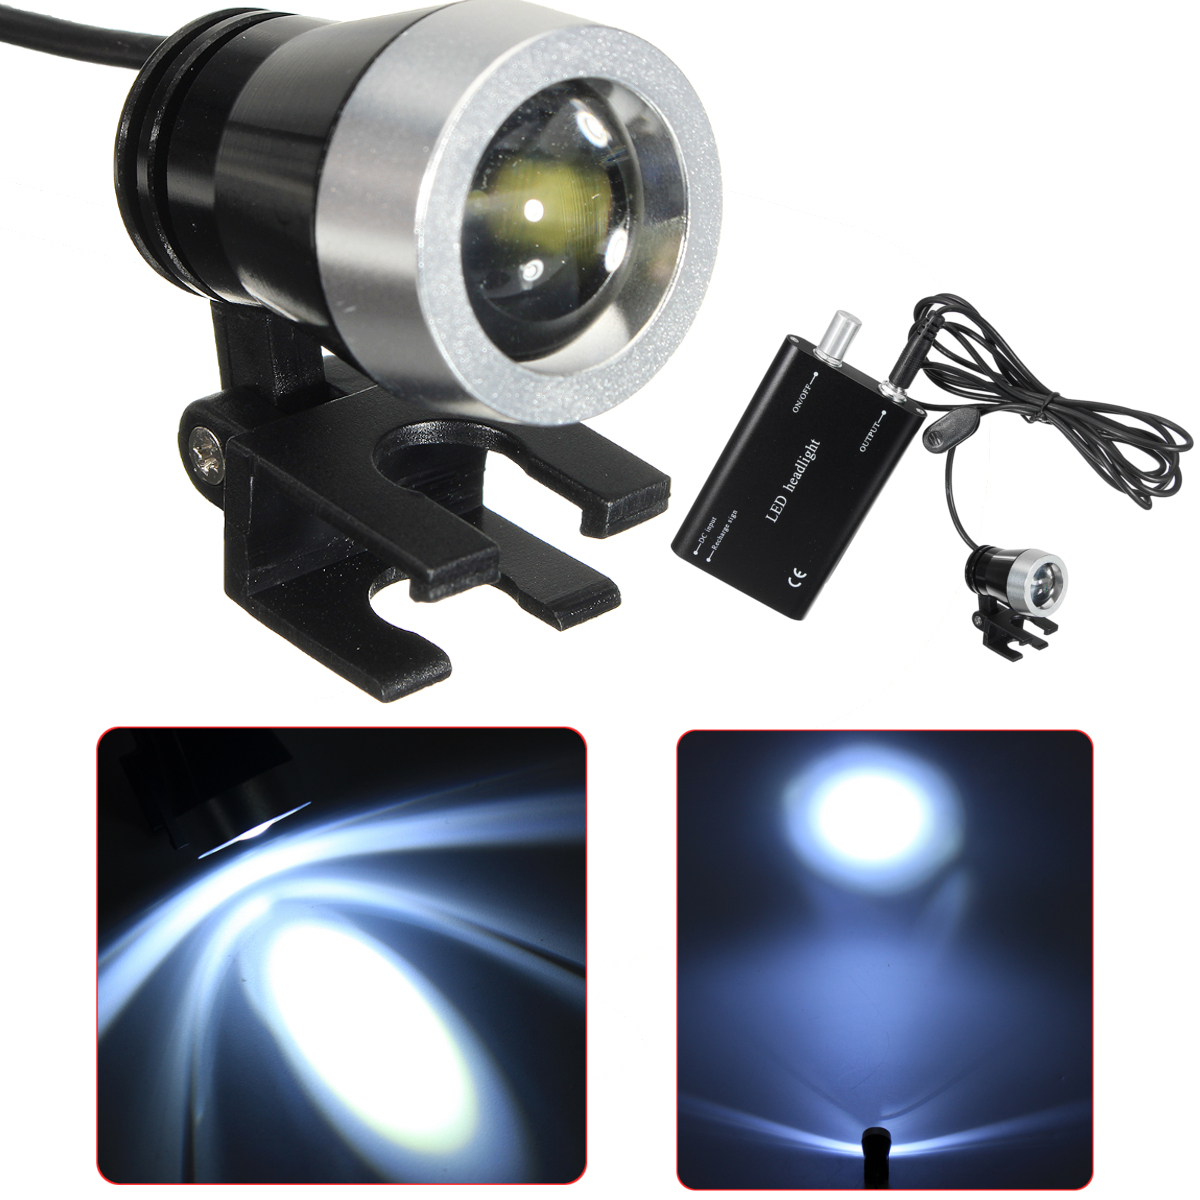 LED Head Light Lamp 3W for Dental Black Surgical Medical Binocular Loupe